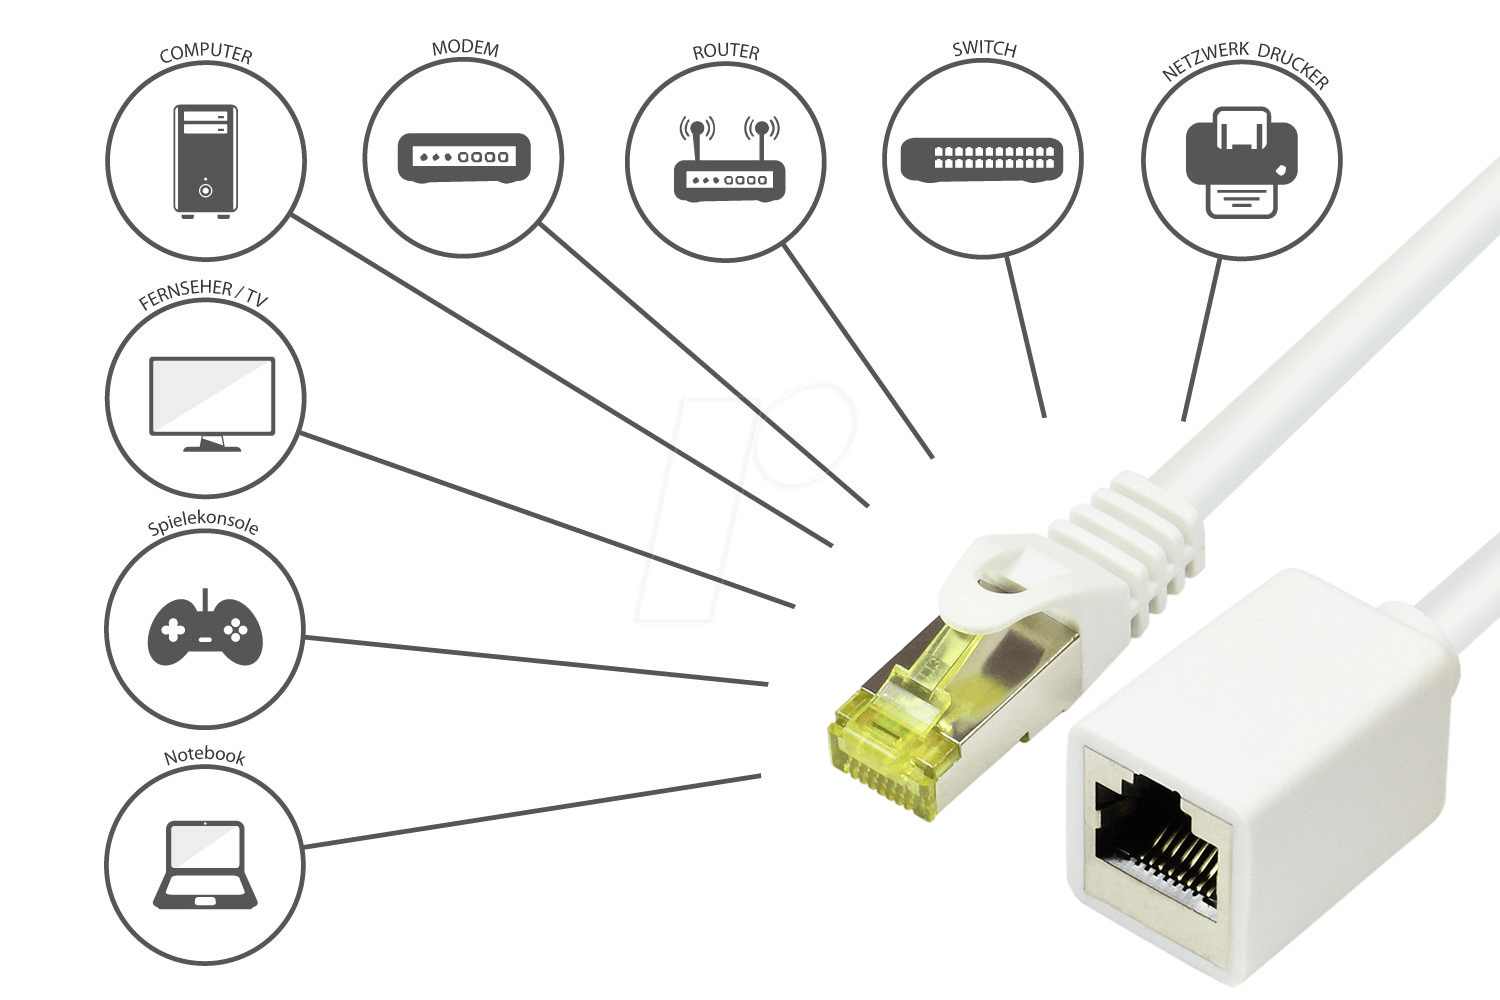 Gc 8070vr 010w Patch Cord Extension Cat7 White 1m At Reichelt Cable Diagram Good Connections